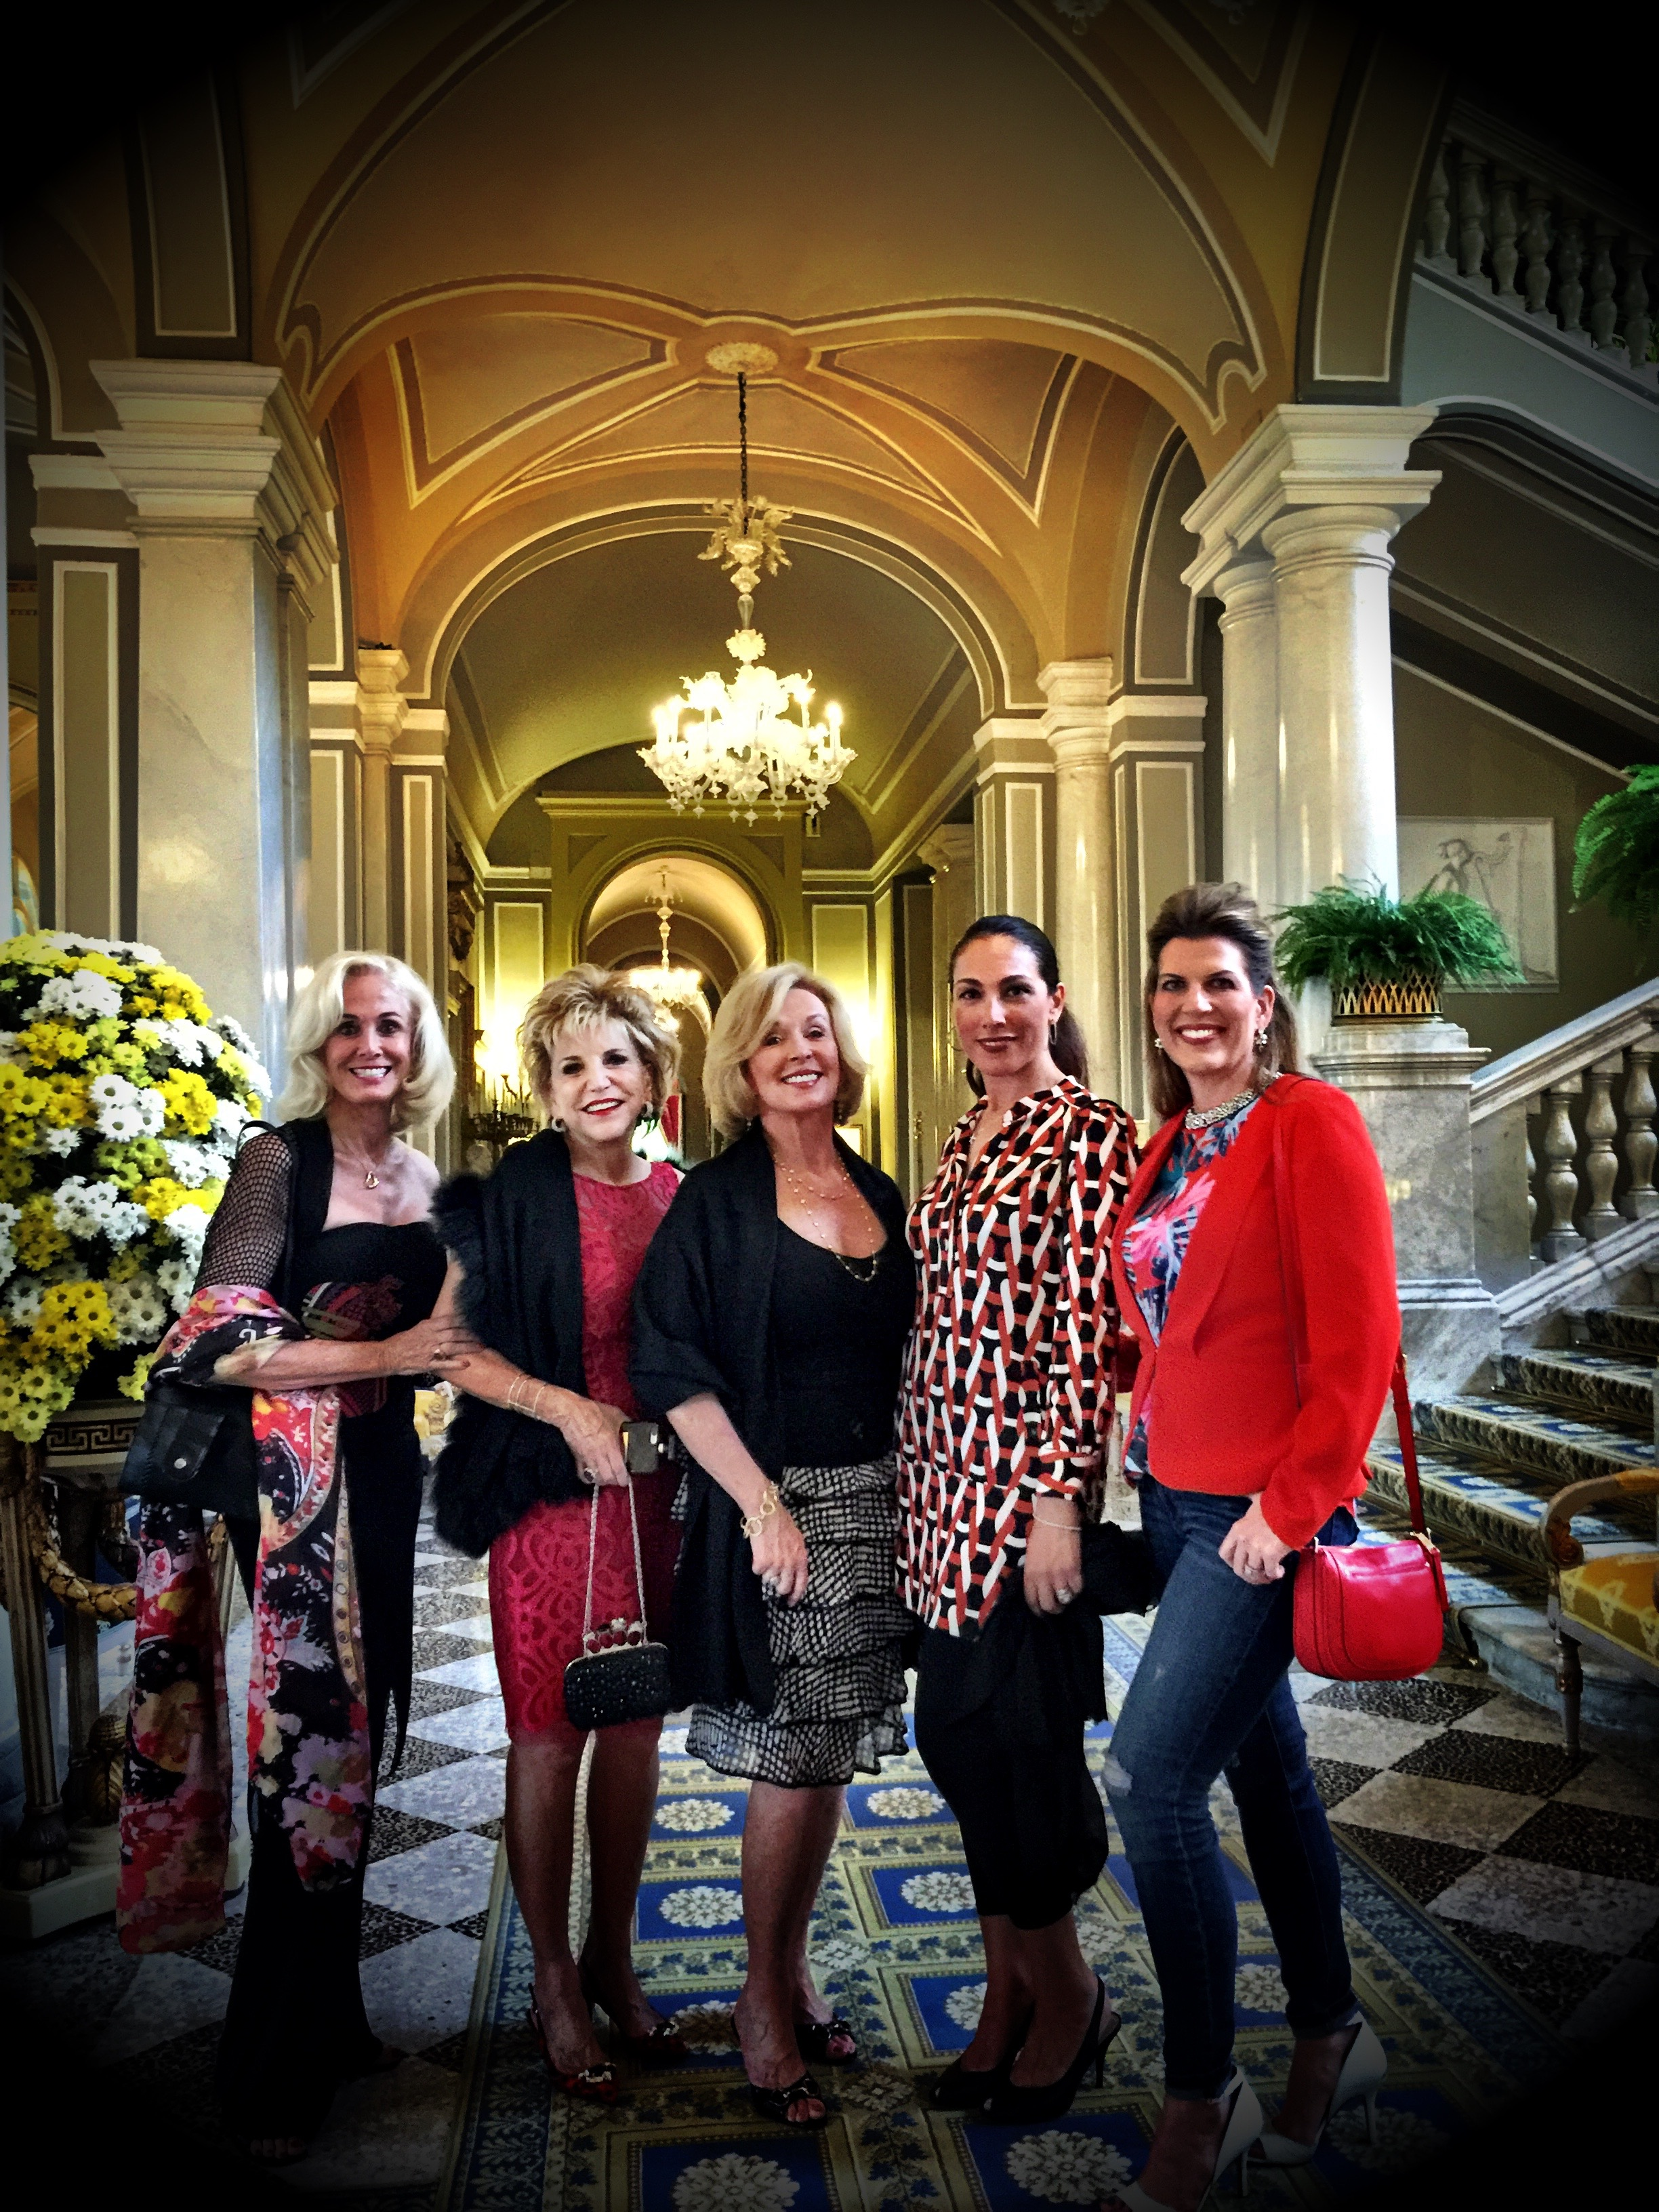 The ladies at Villa d'Este